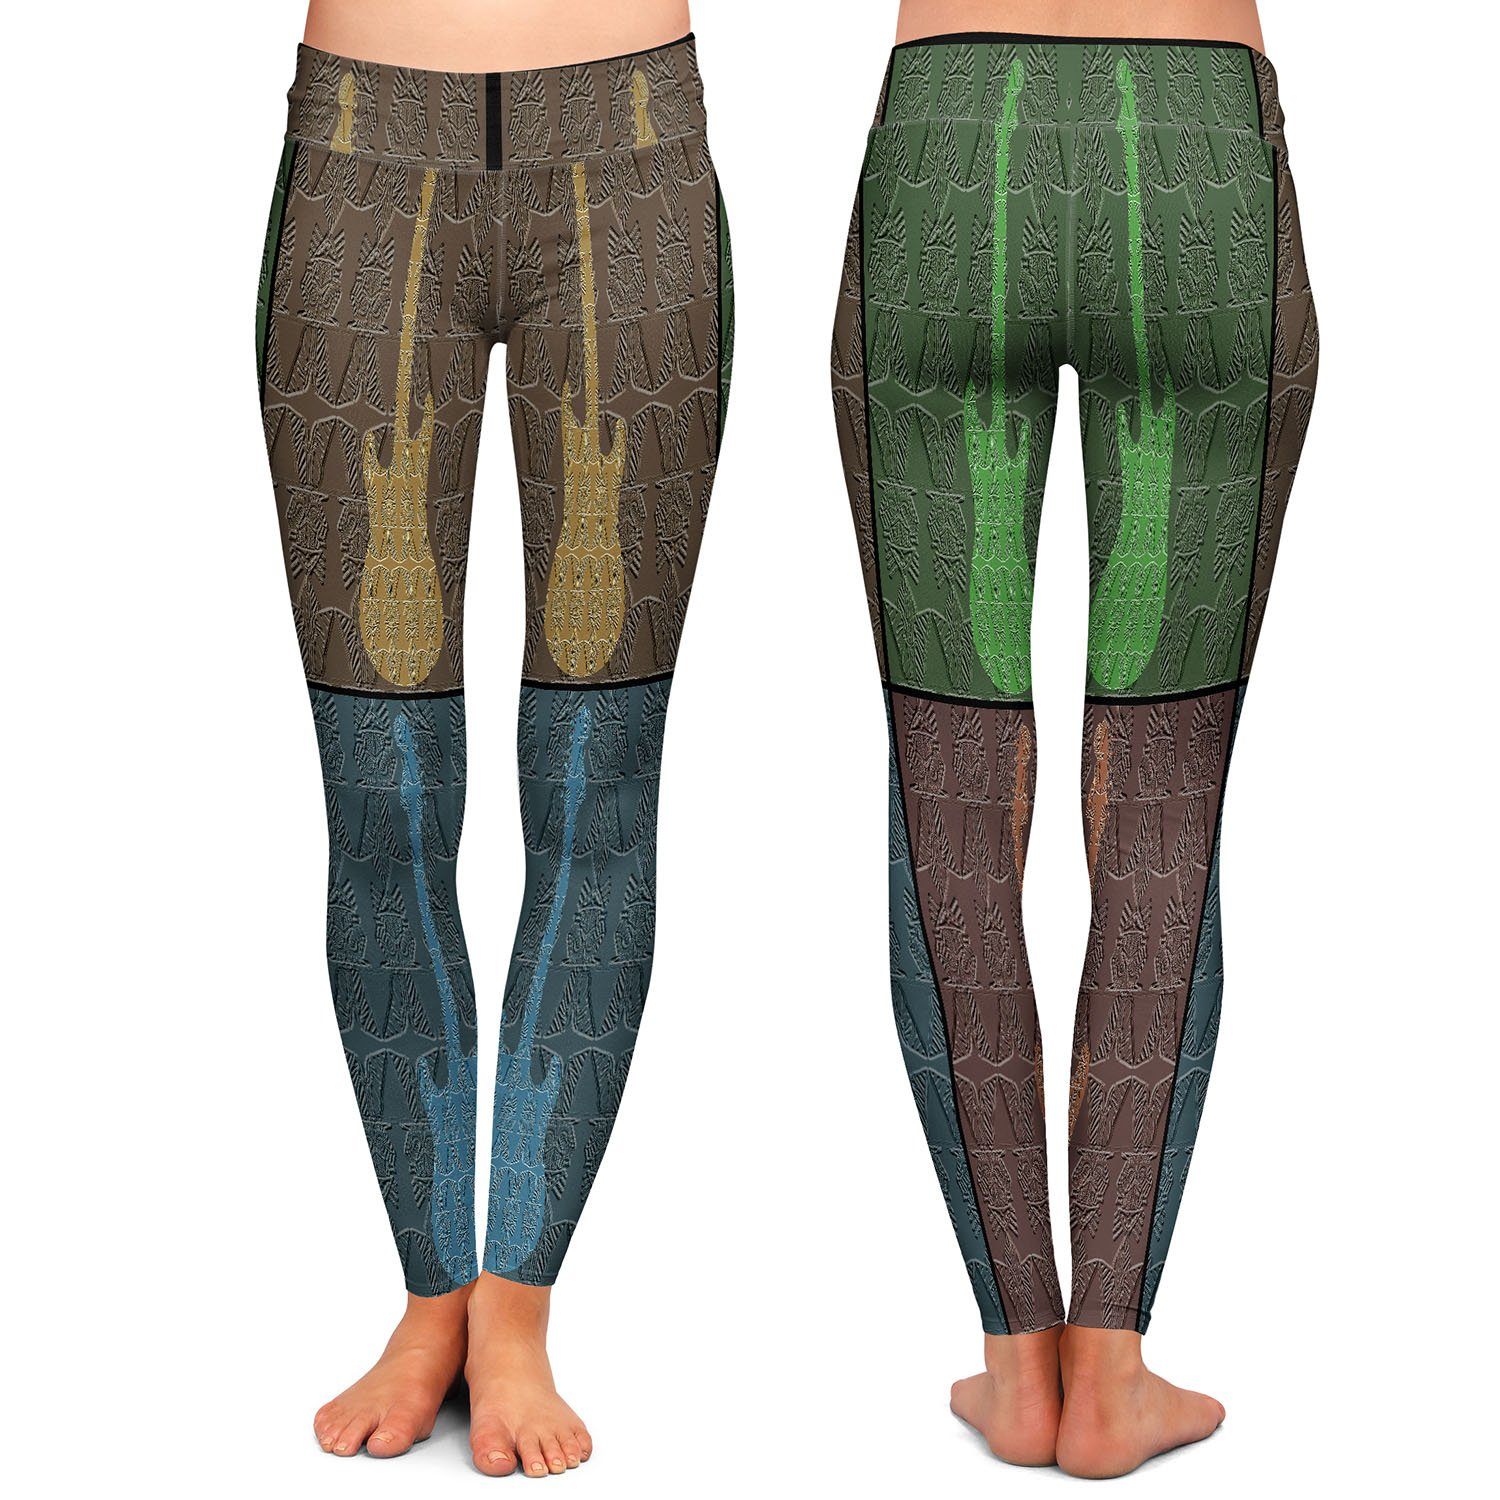 4 Guitars Athletic Yoga Leggings from DiaNoche Designs by Susie Kunzelman